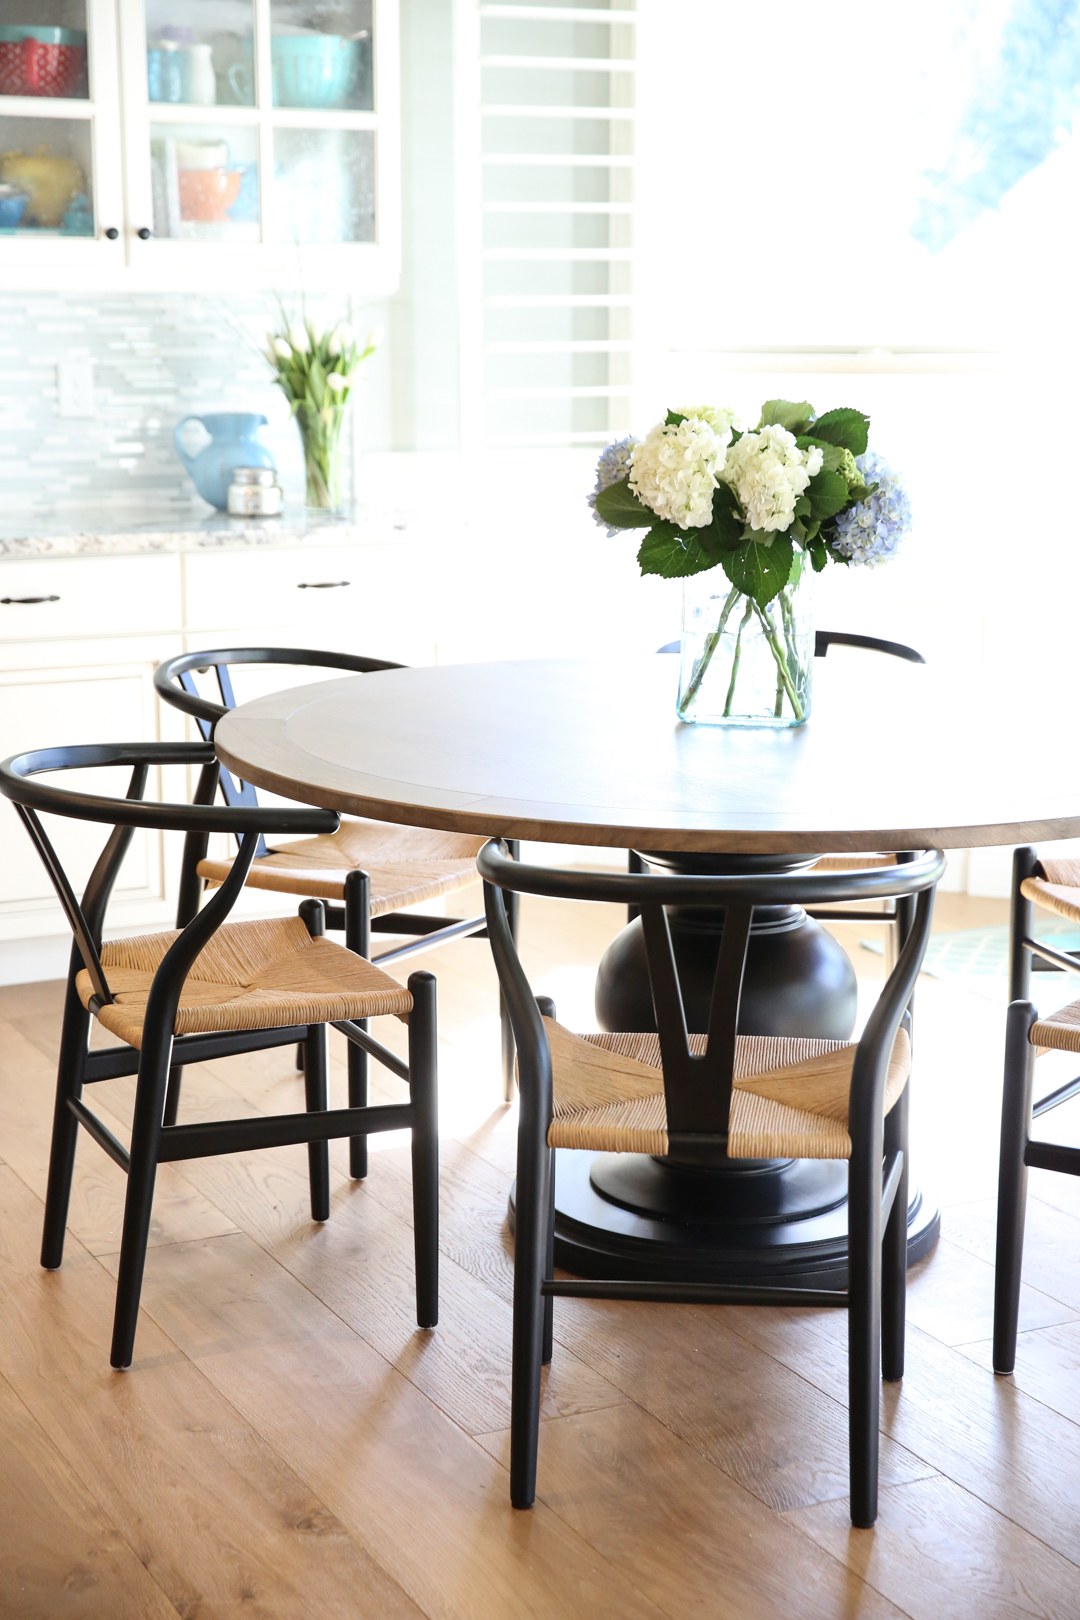 wishbone chairs and round table